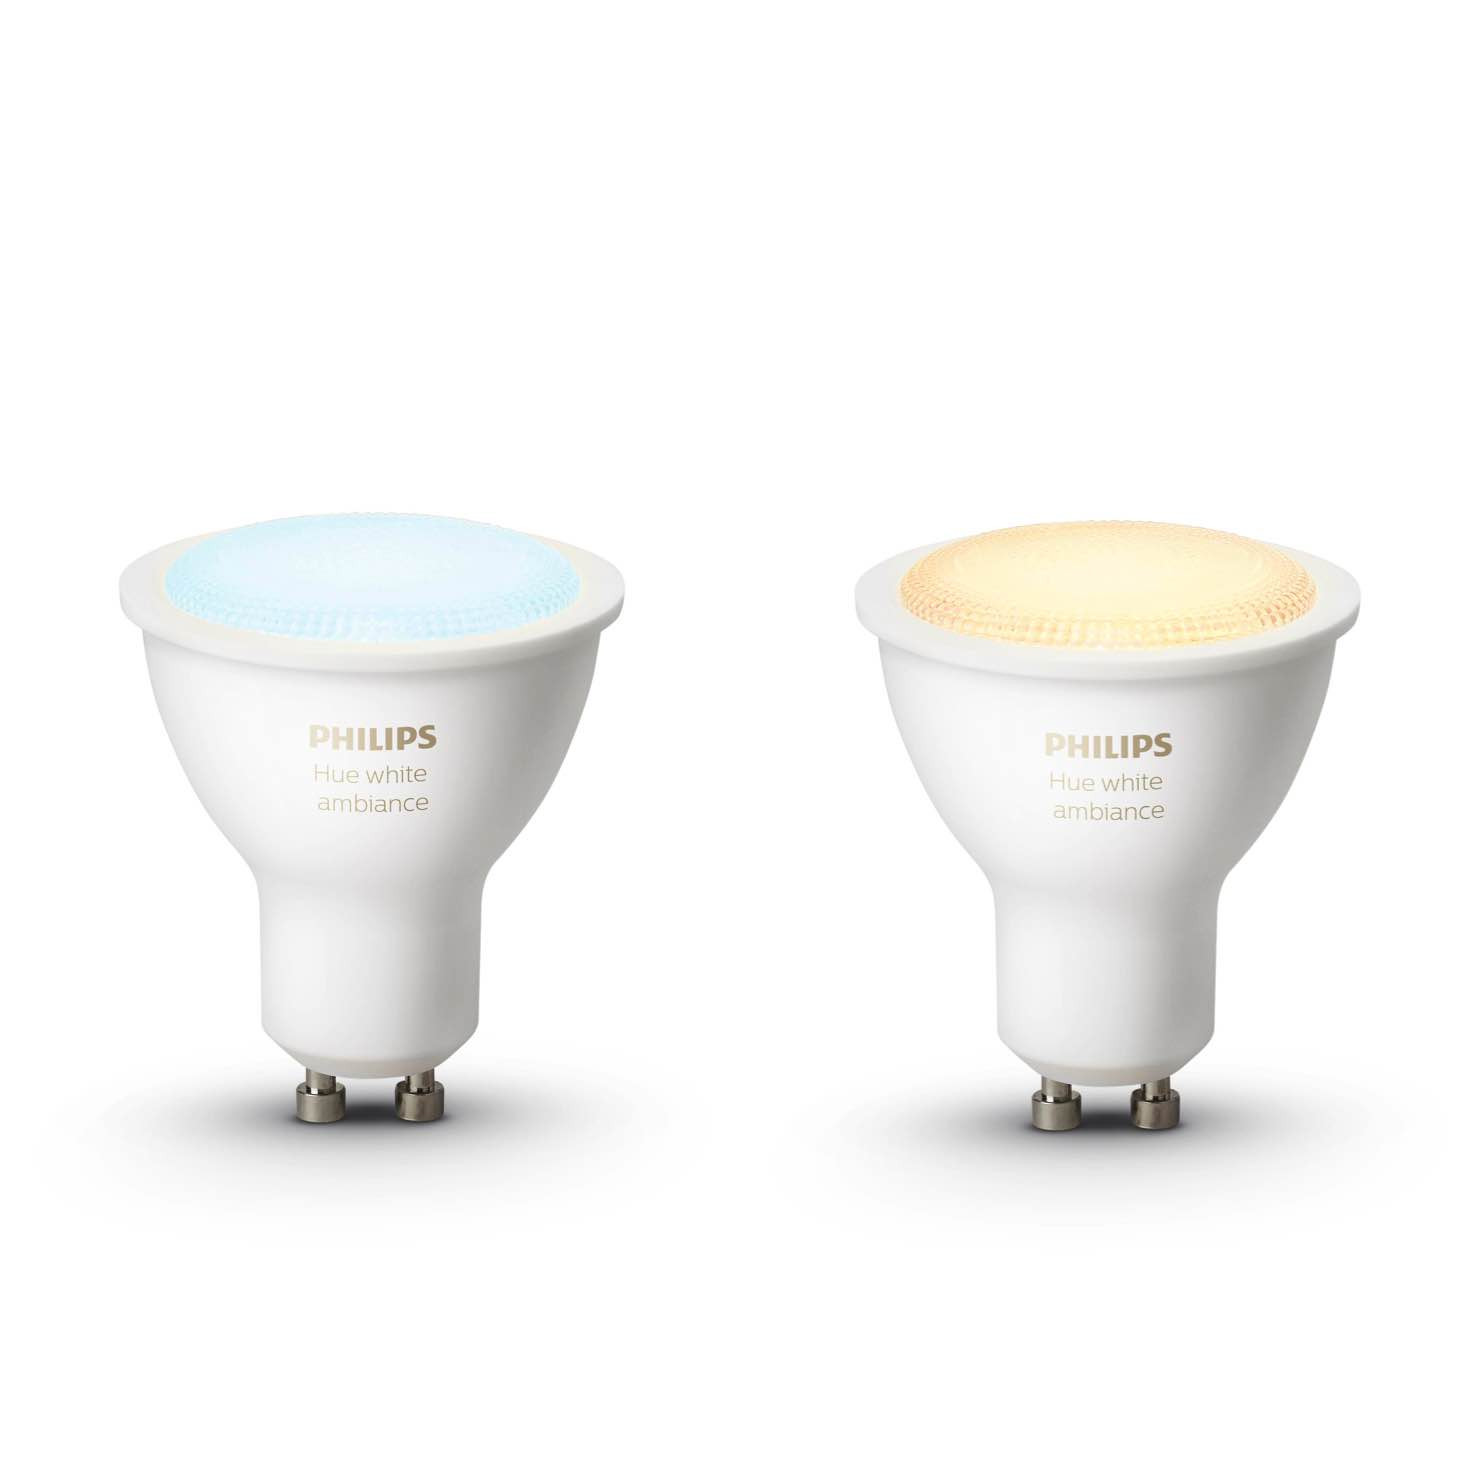 philips hue white ambiance gu10 lampen duopak. Black Bedroom Furniture Sets. Home Design Ideas